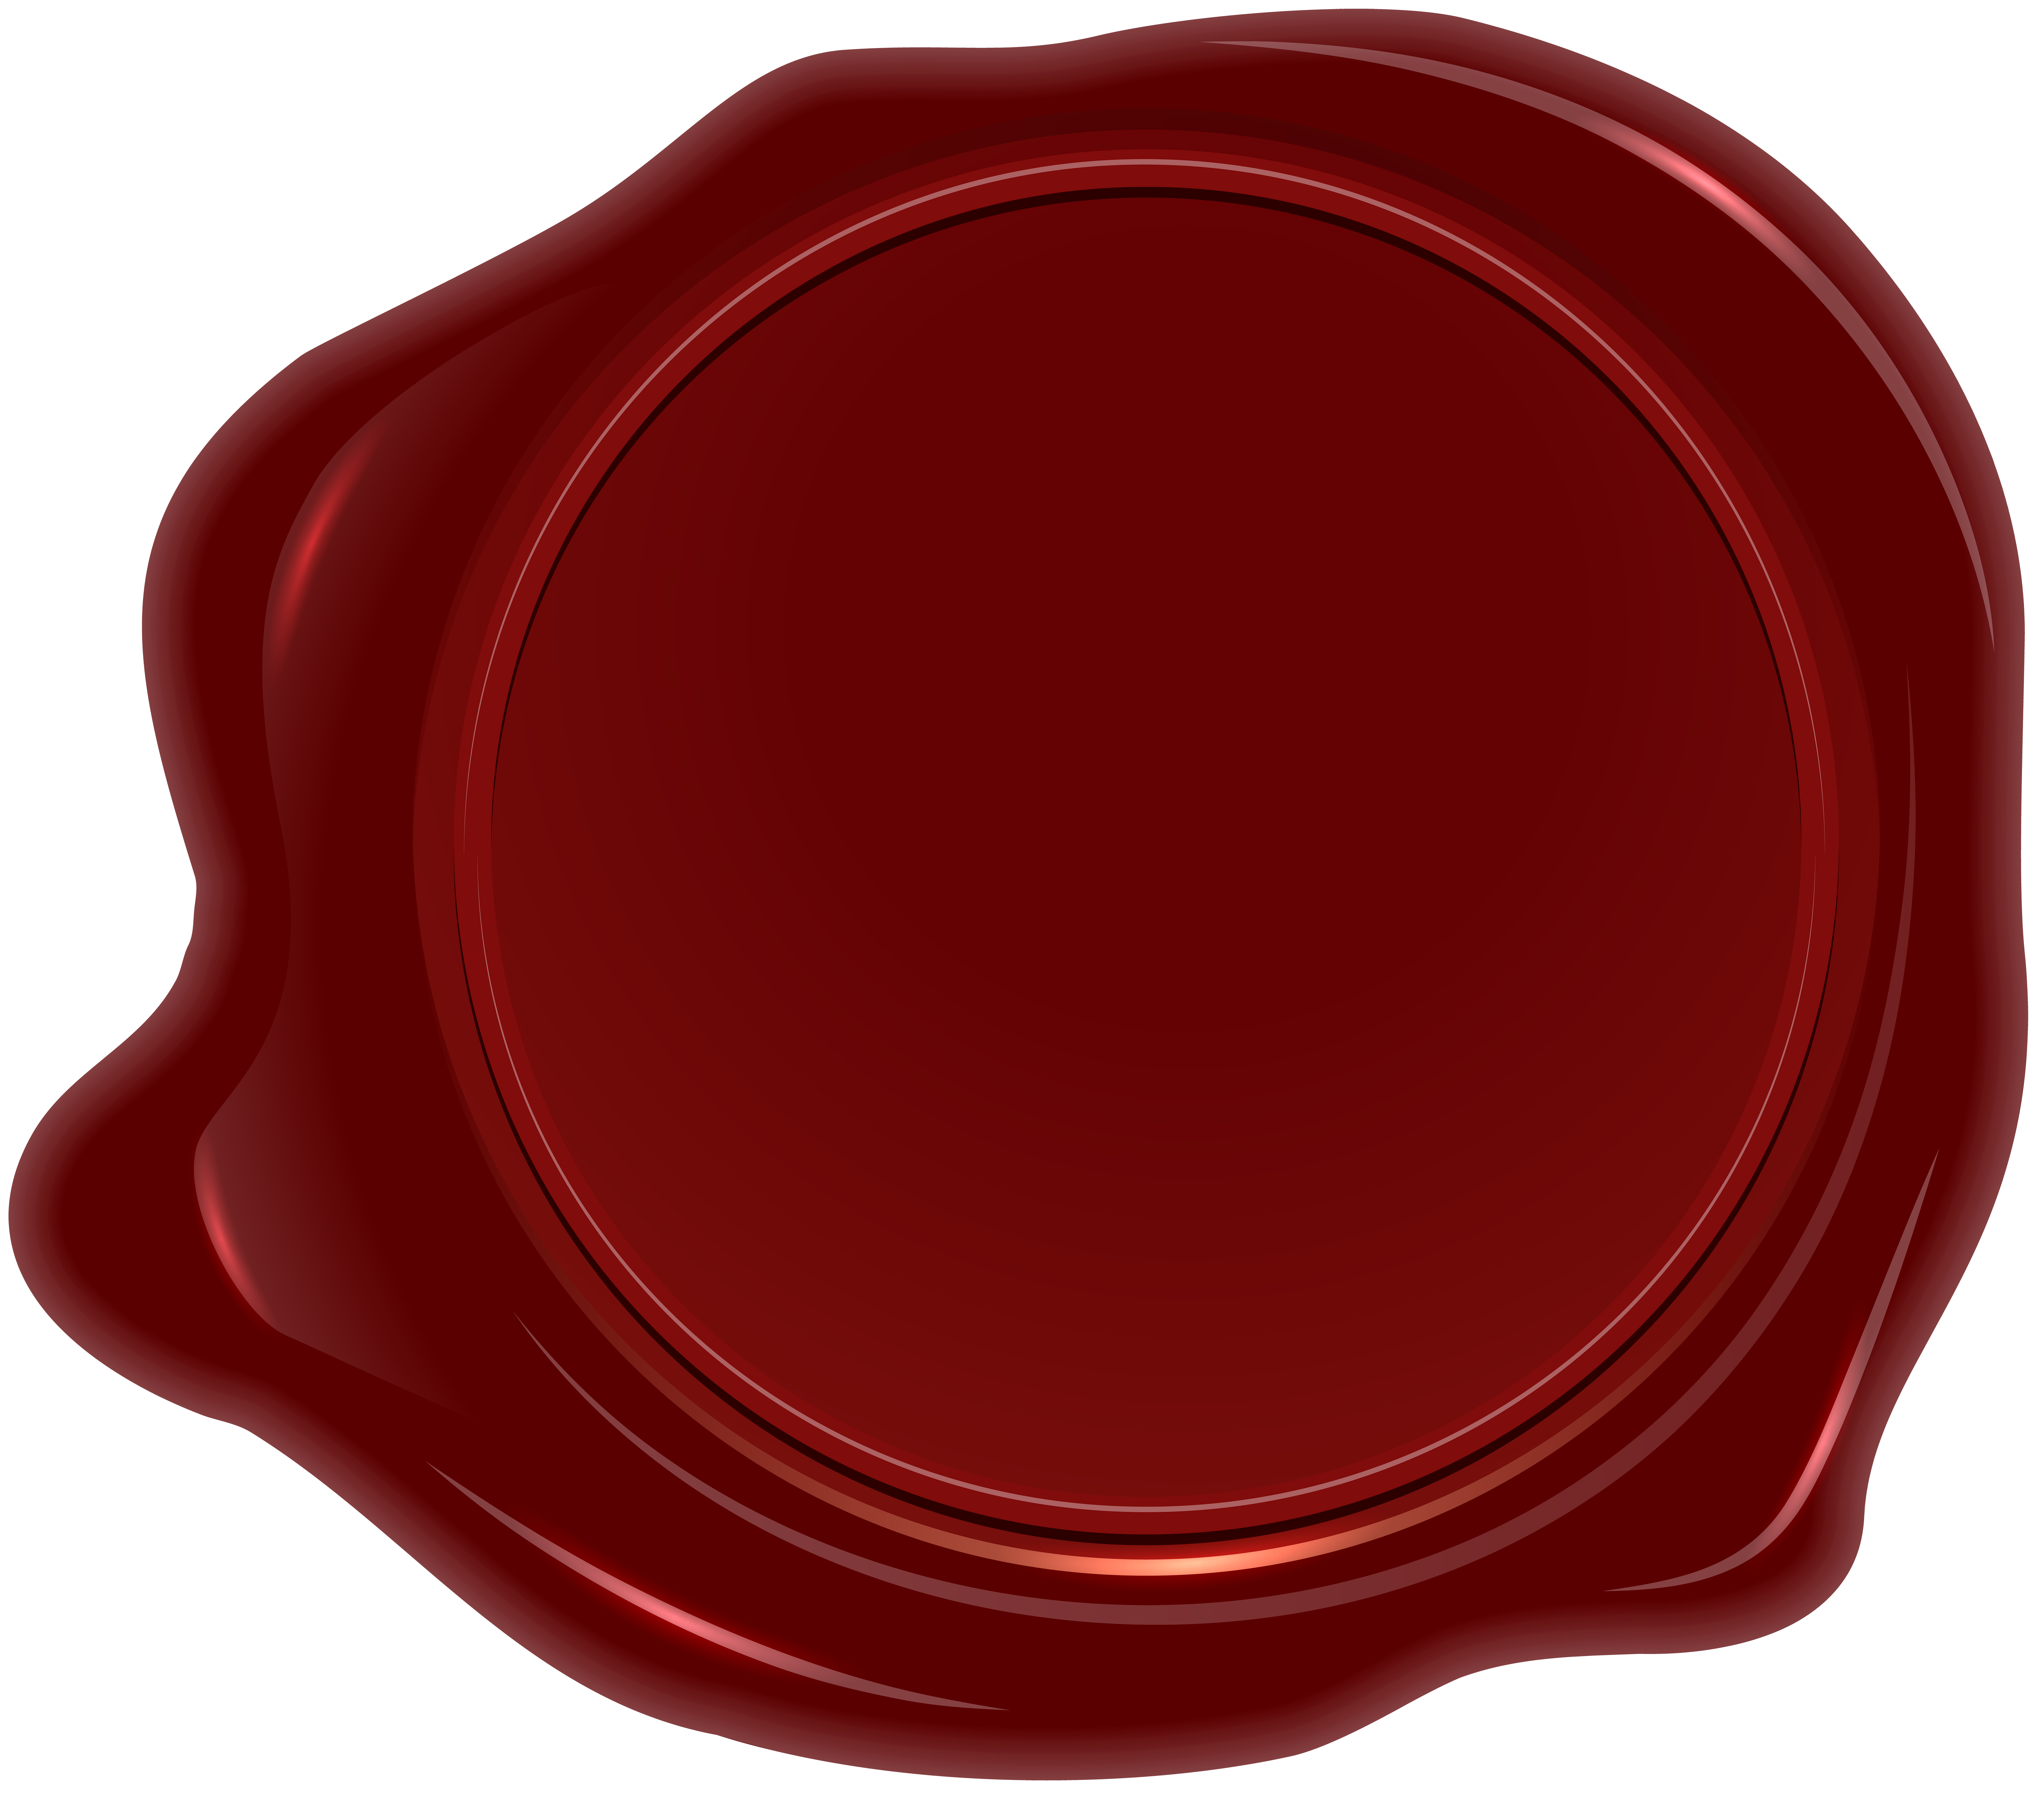 Wax stamp png. Collection of clipart